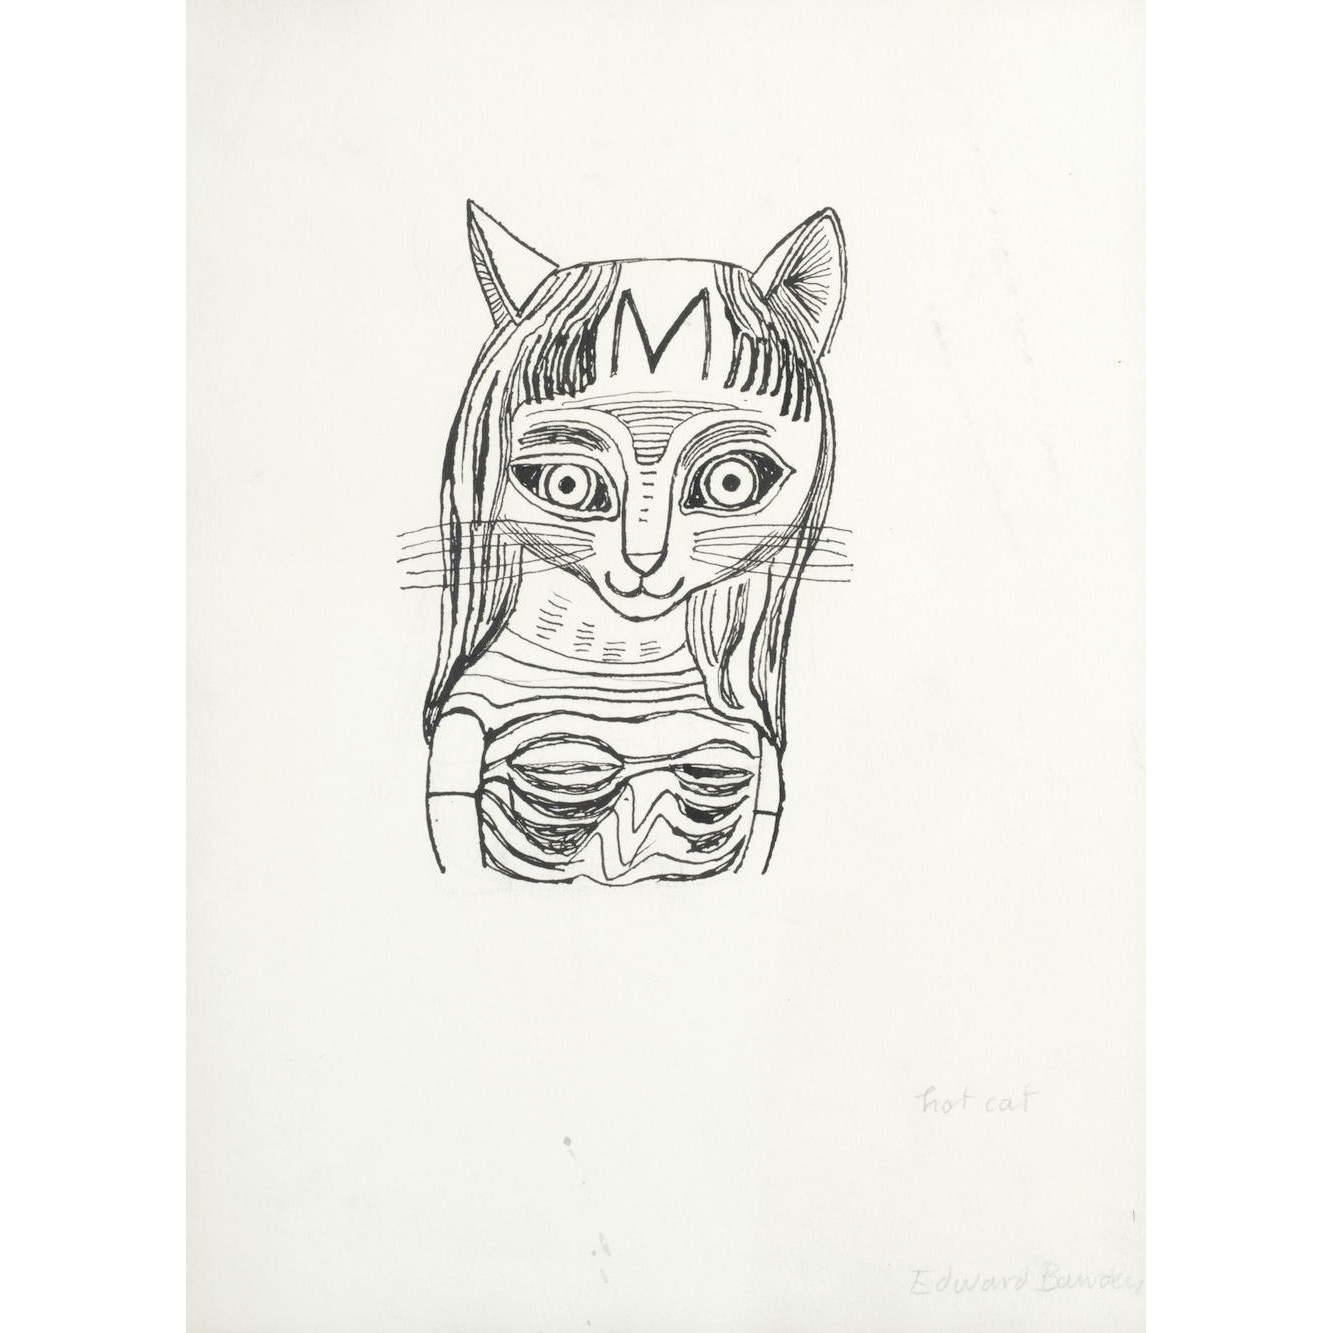 Edward Bawden Hot Cat drawing